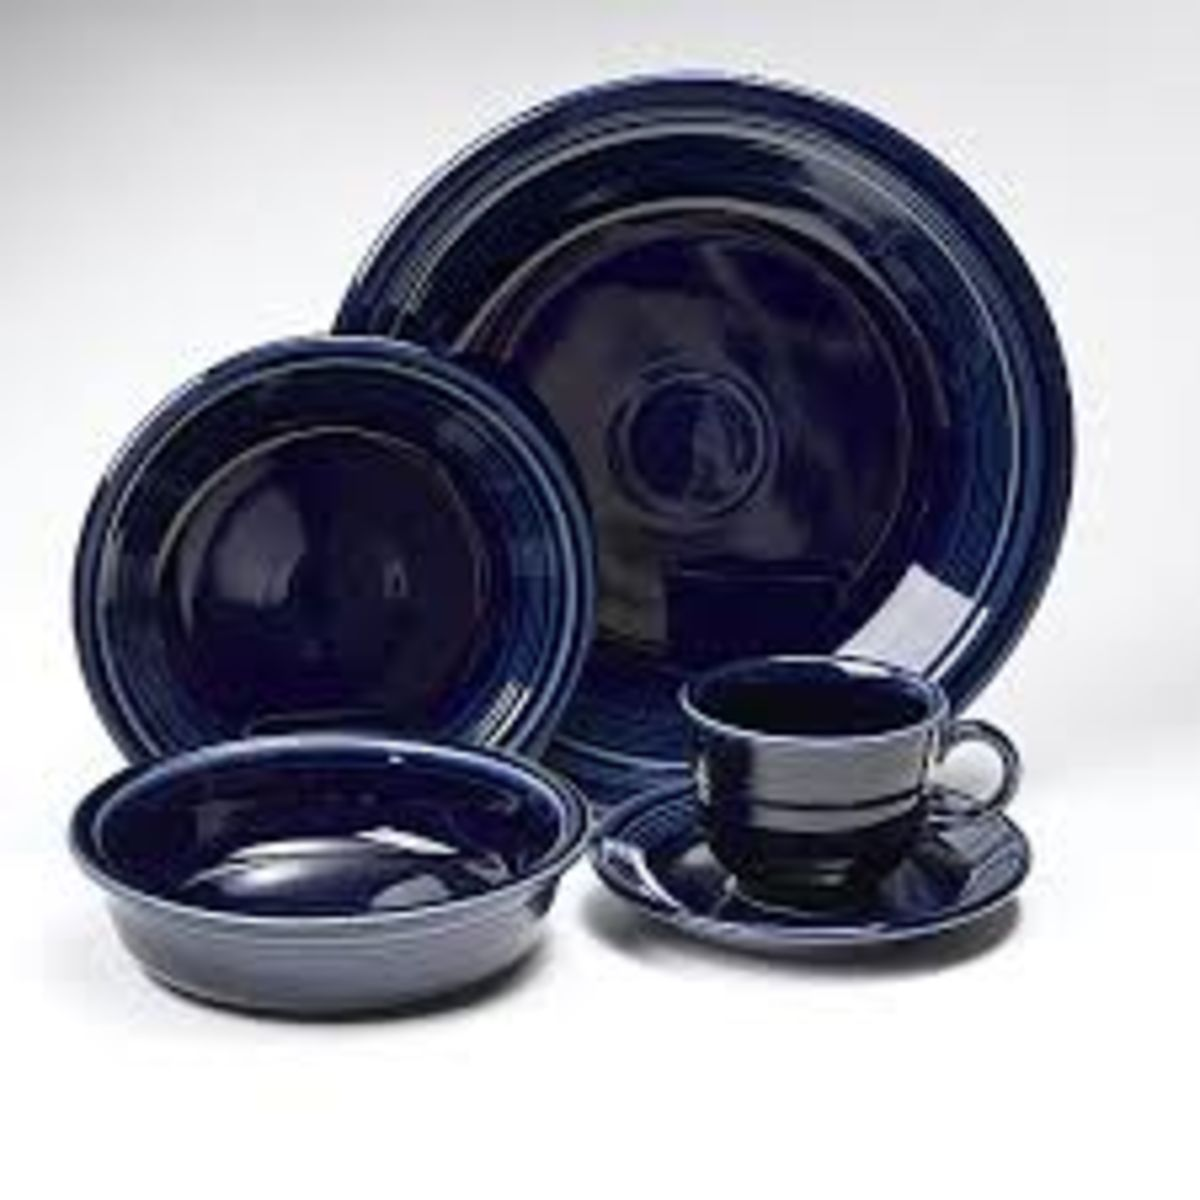 Headline for Fiestaware Cobalt Plates for Dessert, Dinner, and Salad Place Settings